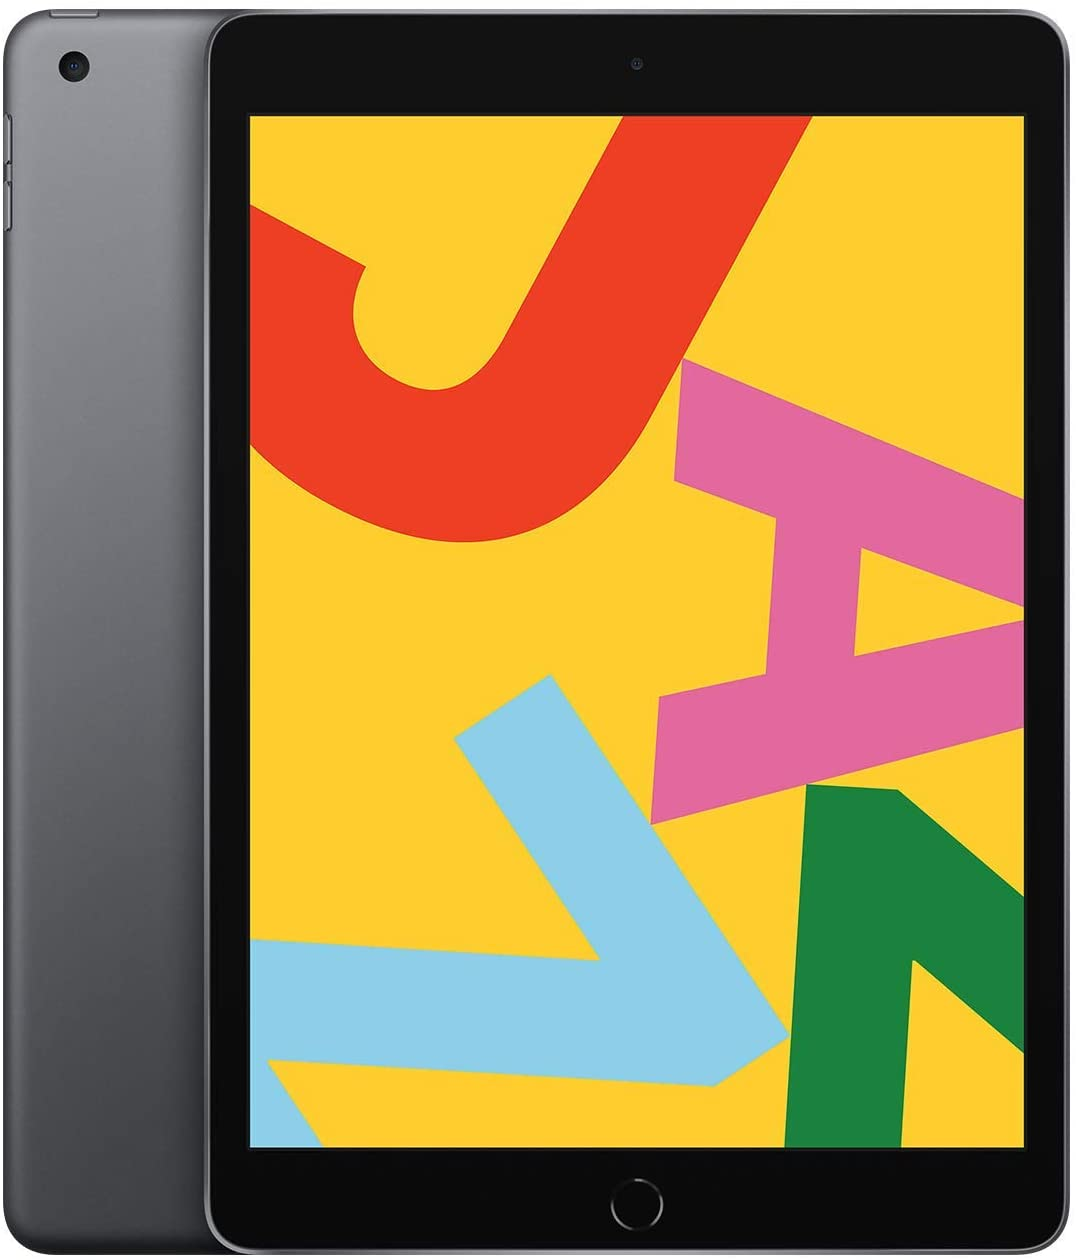 Apple iPad (10.2-Inch, Wi-Fi, 32GB) - Space Gray (Latest Model) (Renewed)